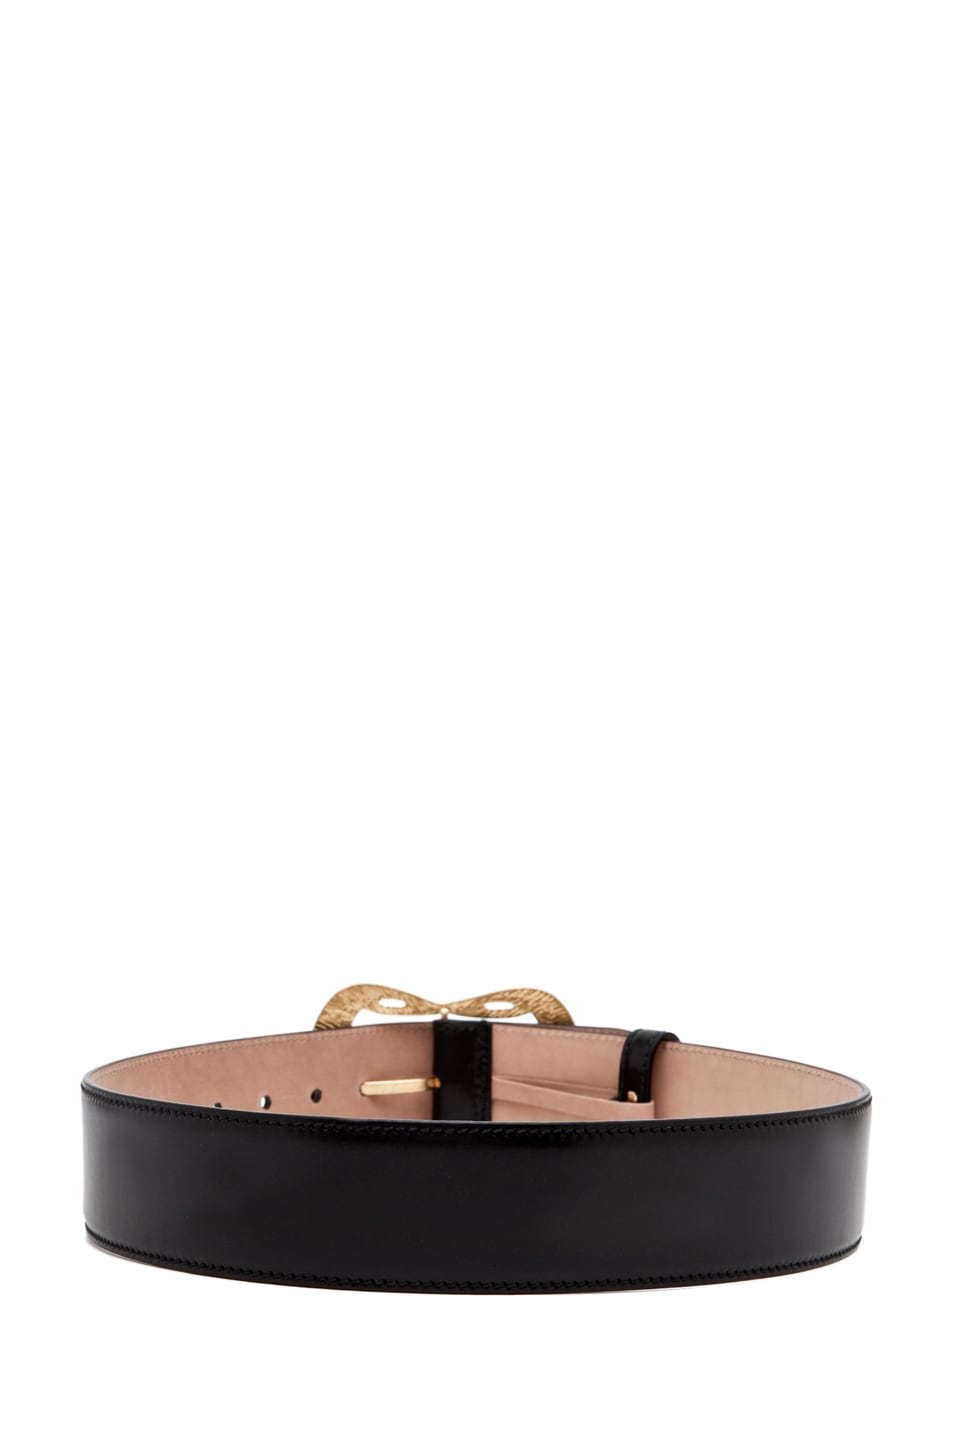 Image 3 of Alexander McQueen Leather Waist Belt in Black